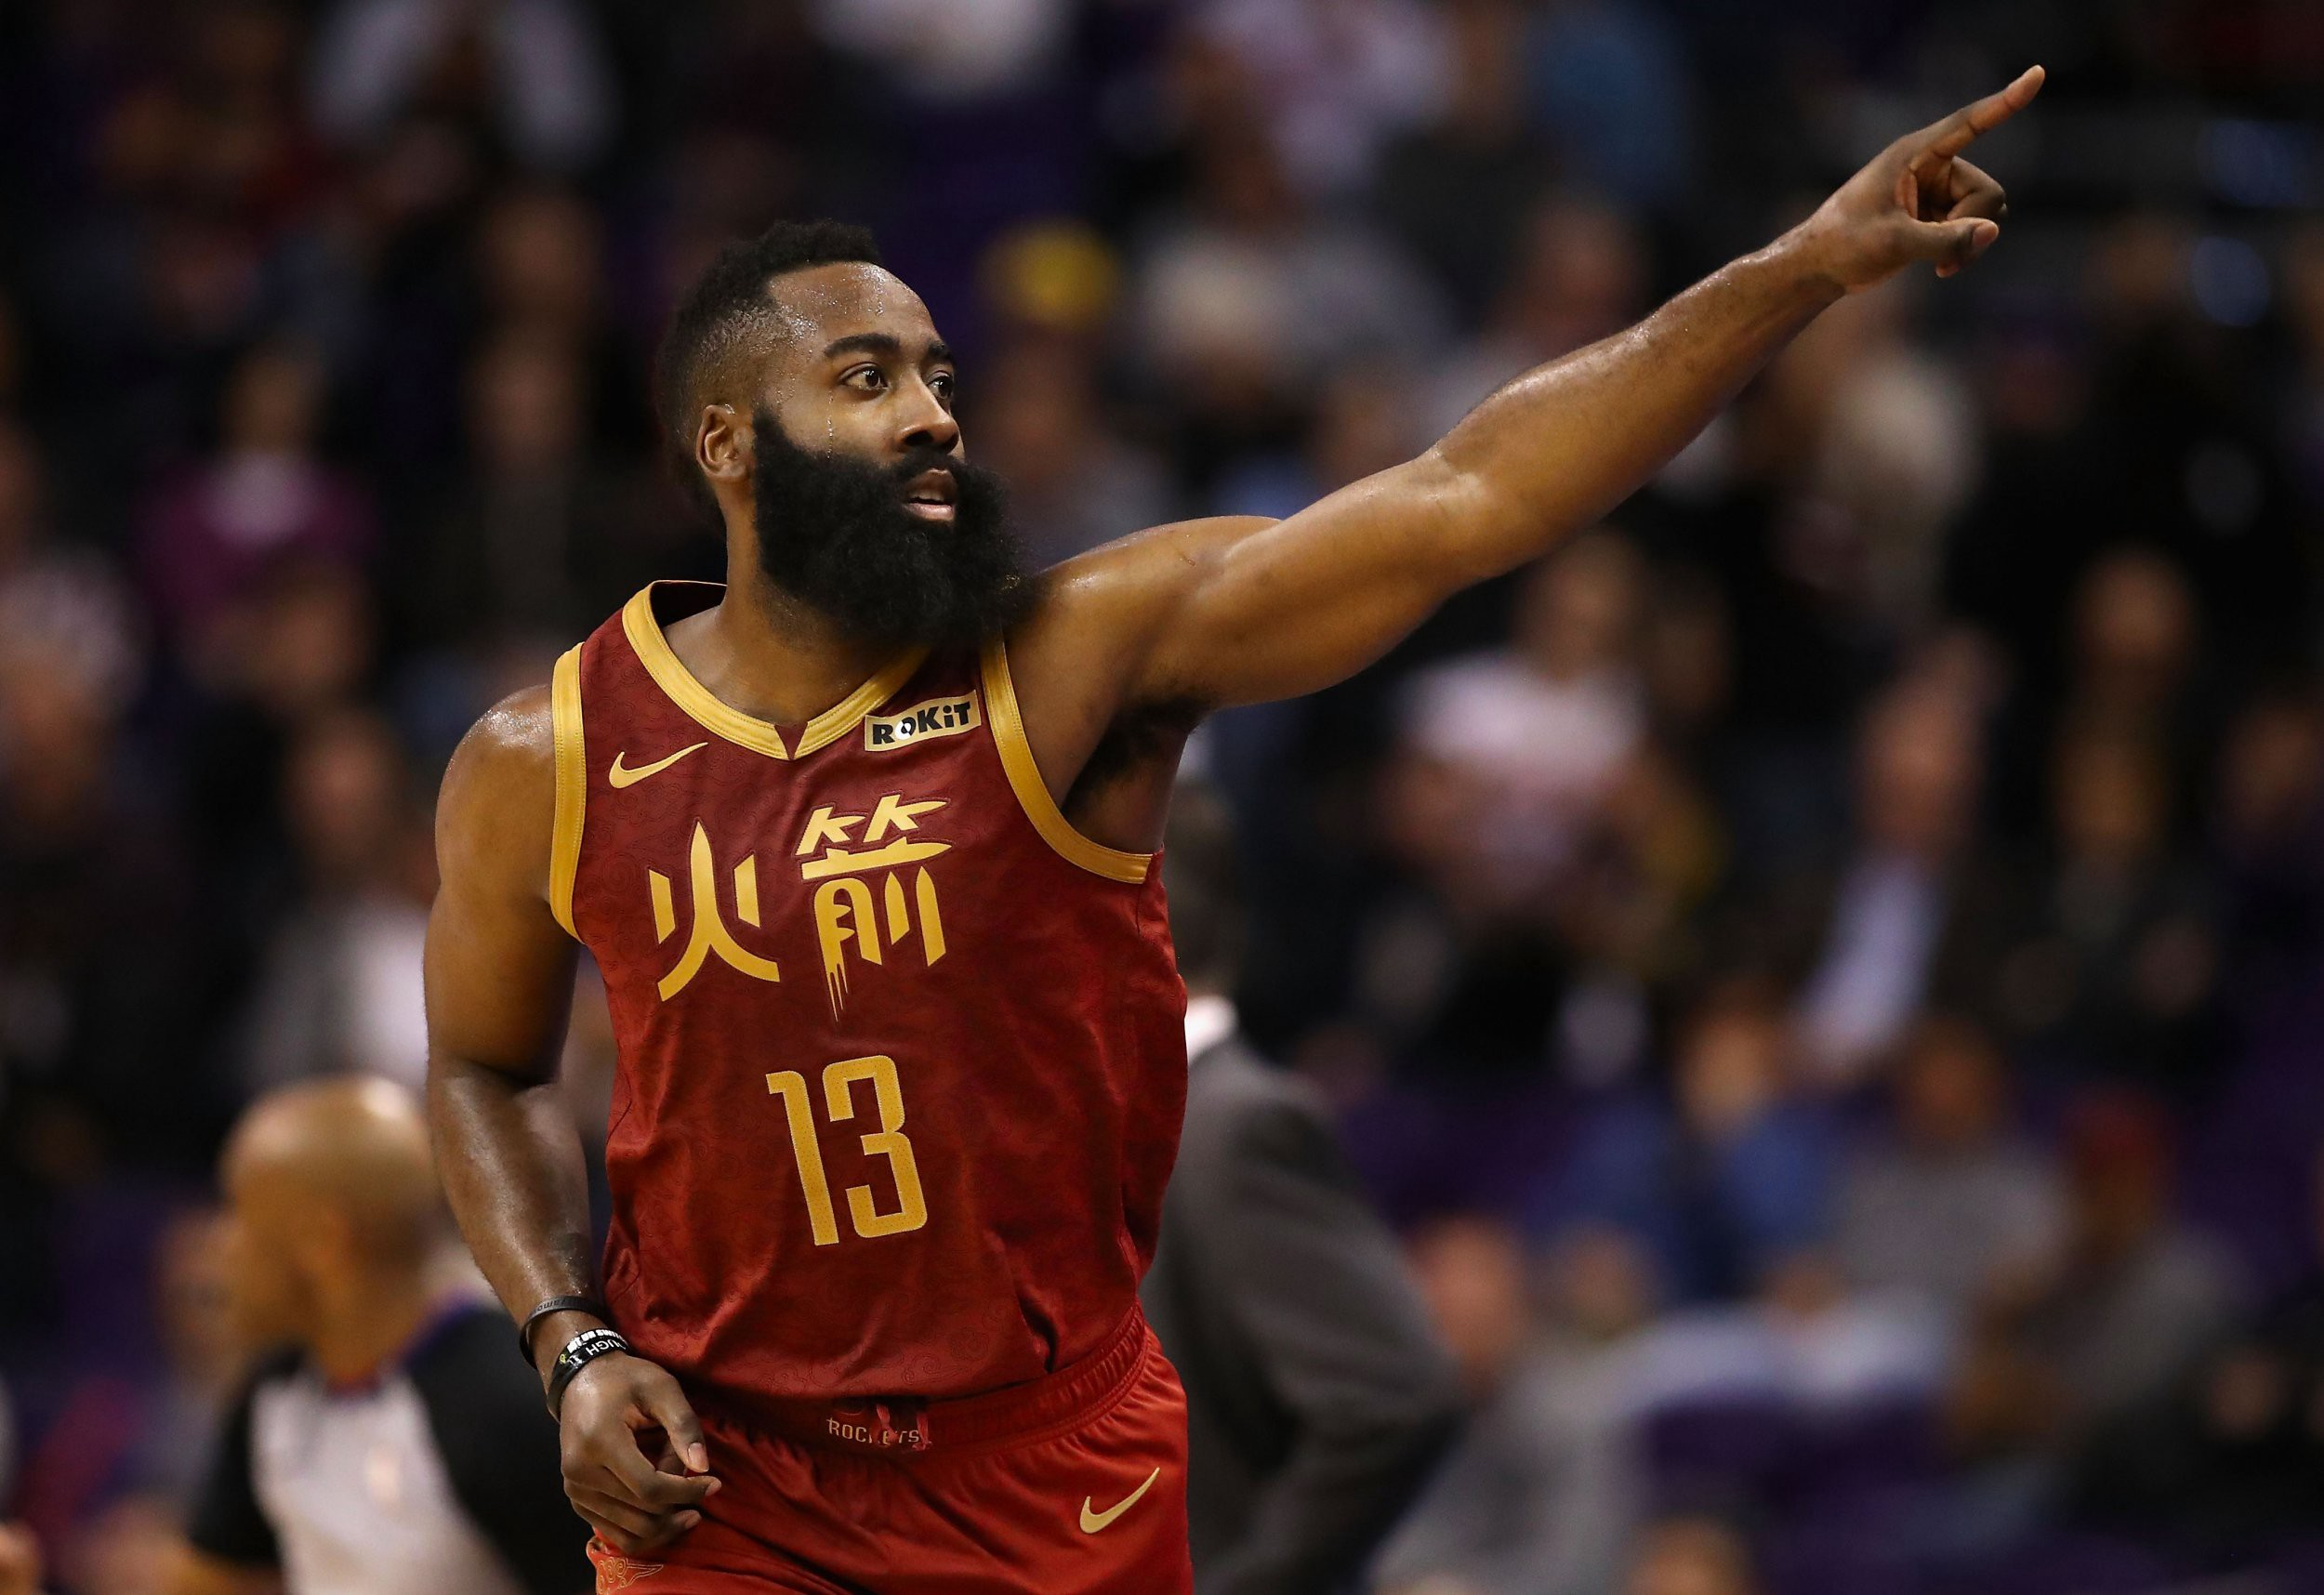 James Harden wearing special, Chinese New Year themed jersey. The Rockets are no longer popular team in China, however.